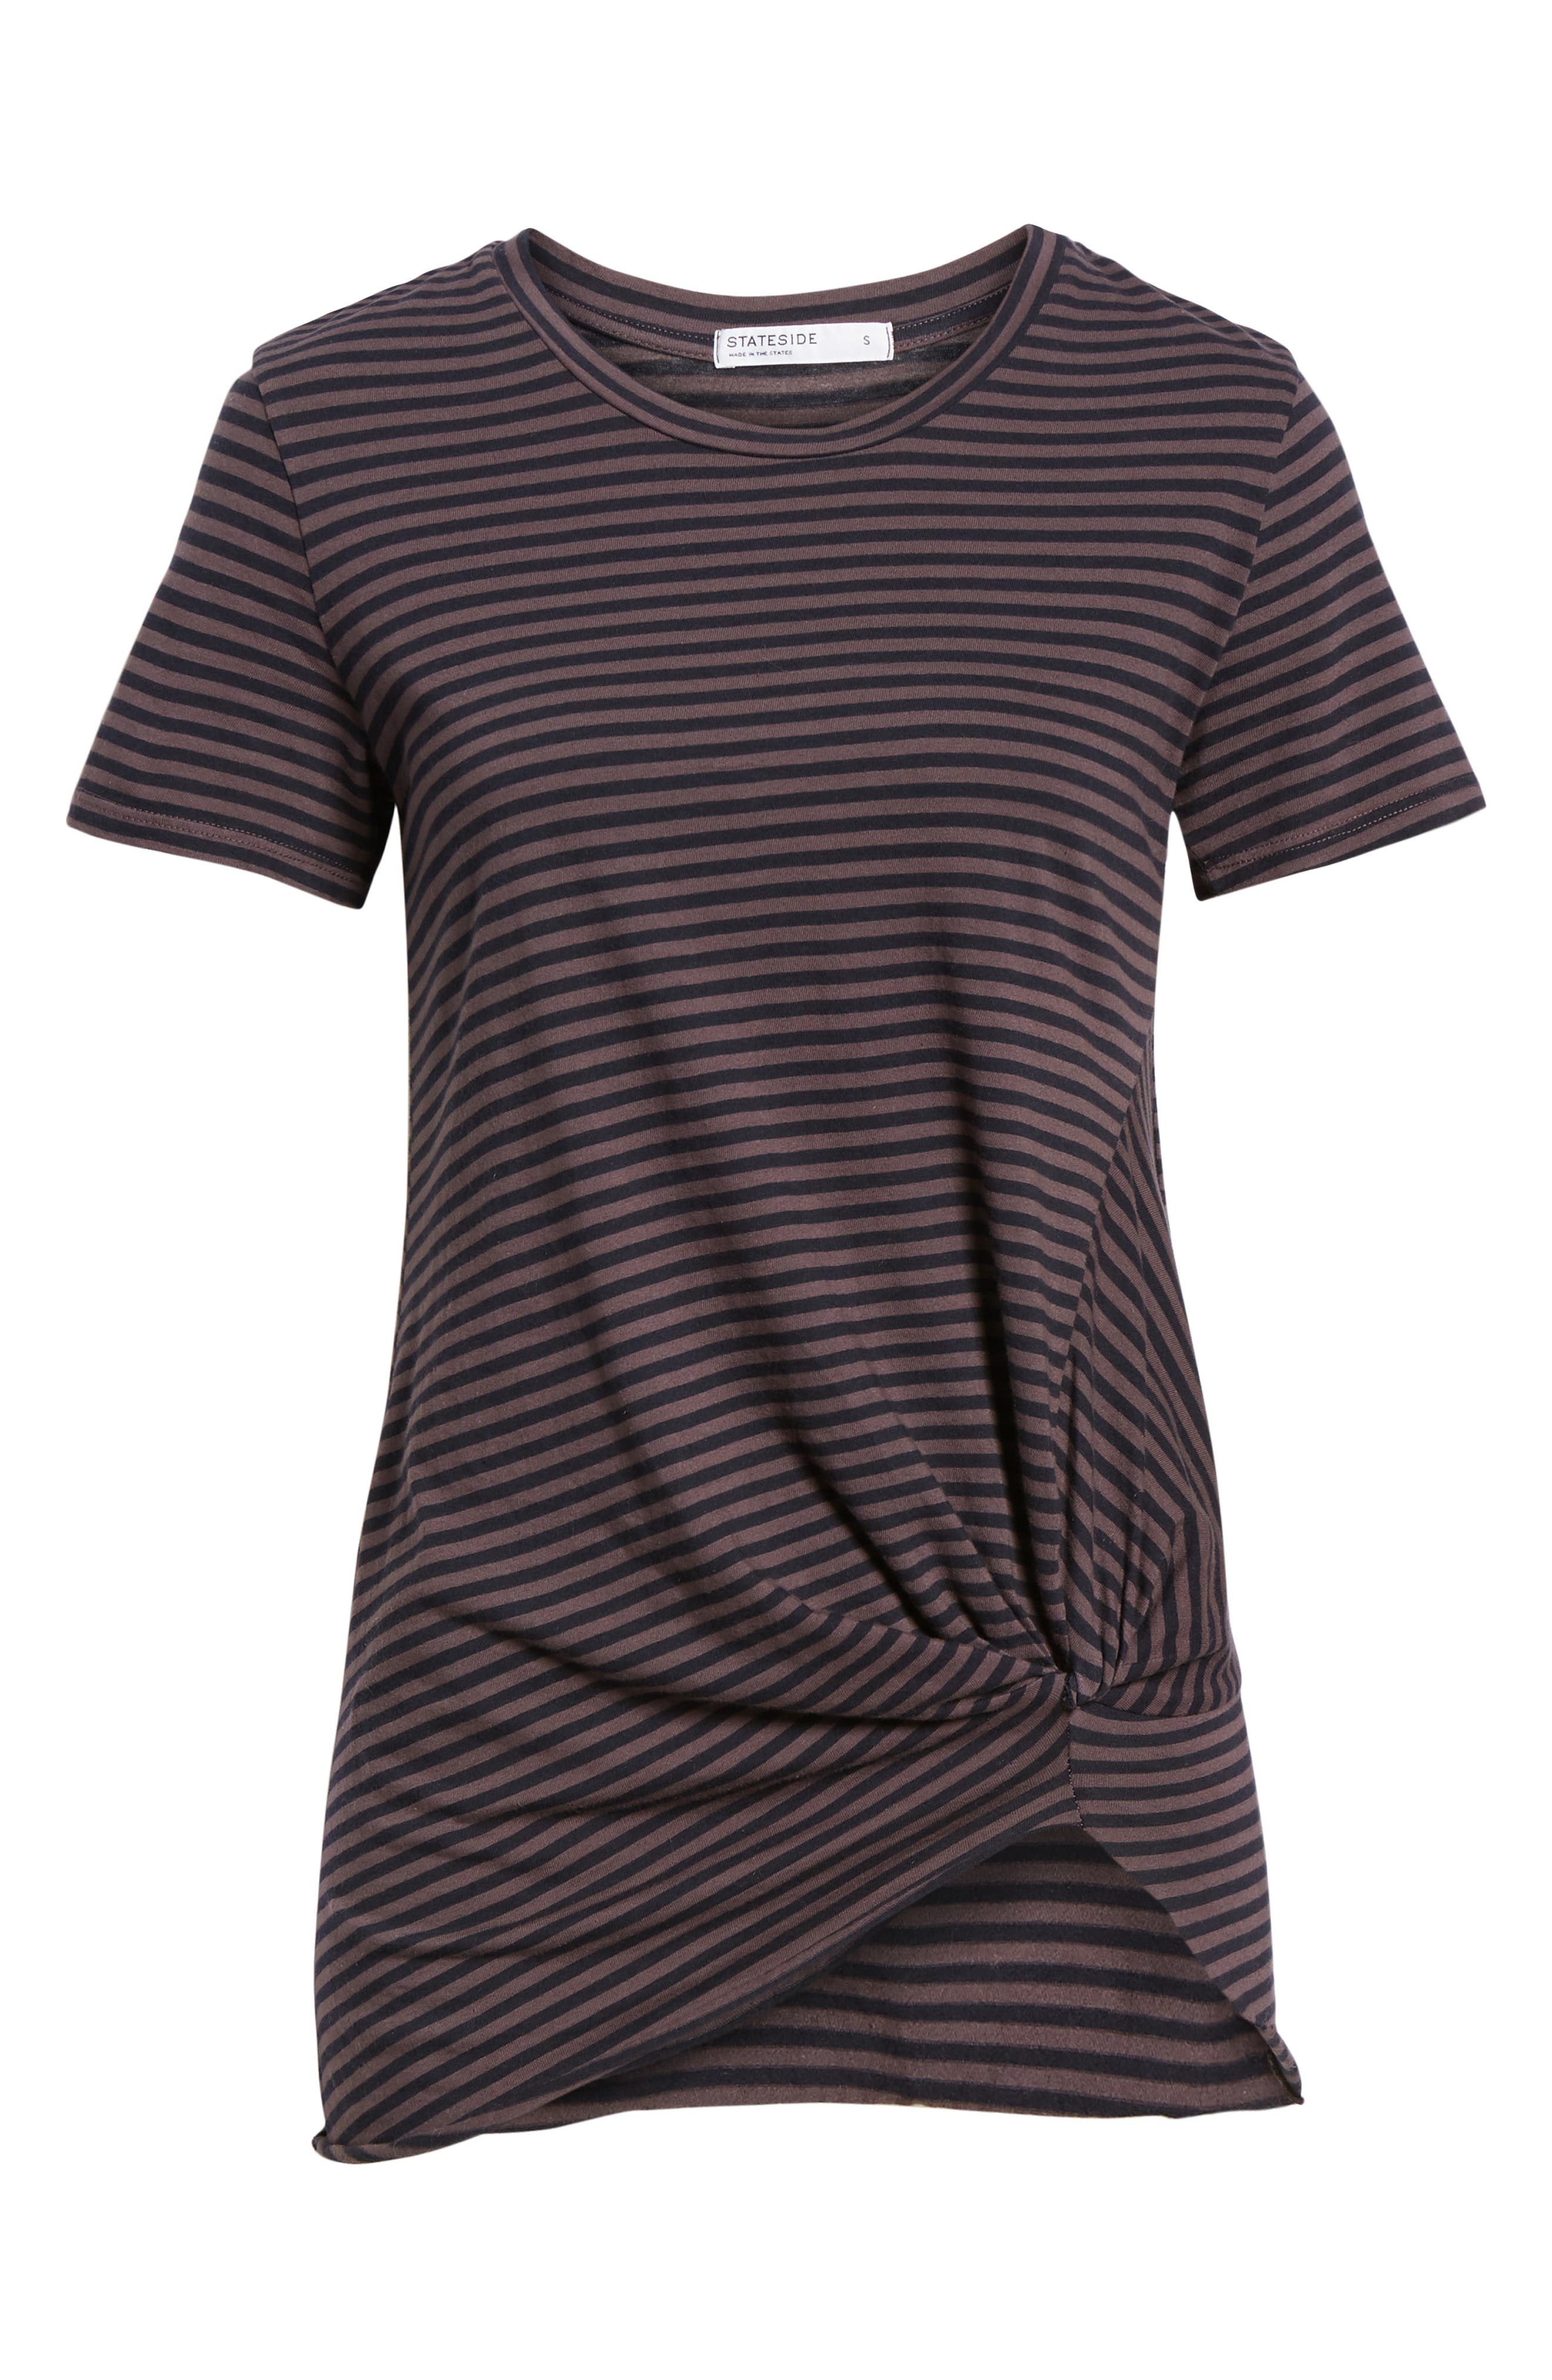 Stripe Twist Tee,                             Alternate thumbnail 6, color,                             TAUPE